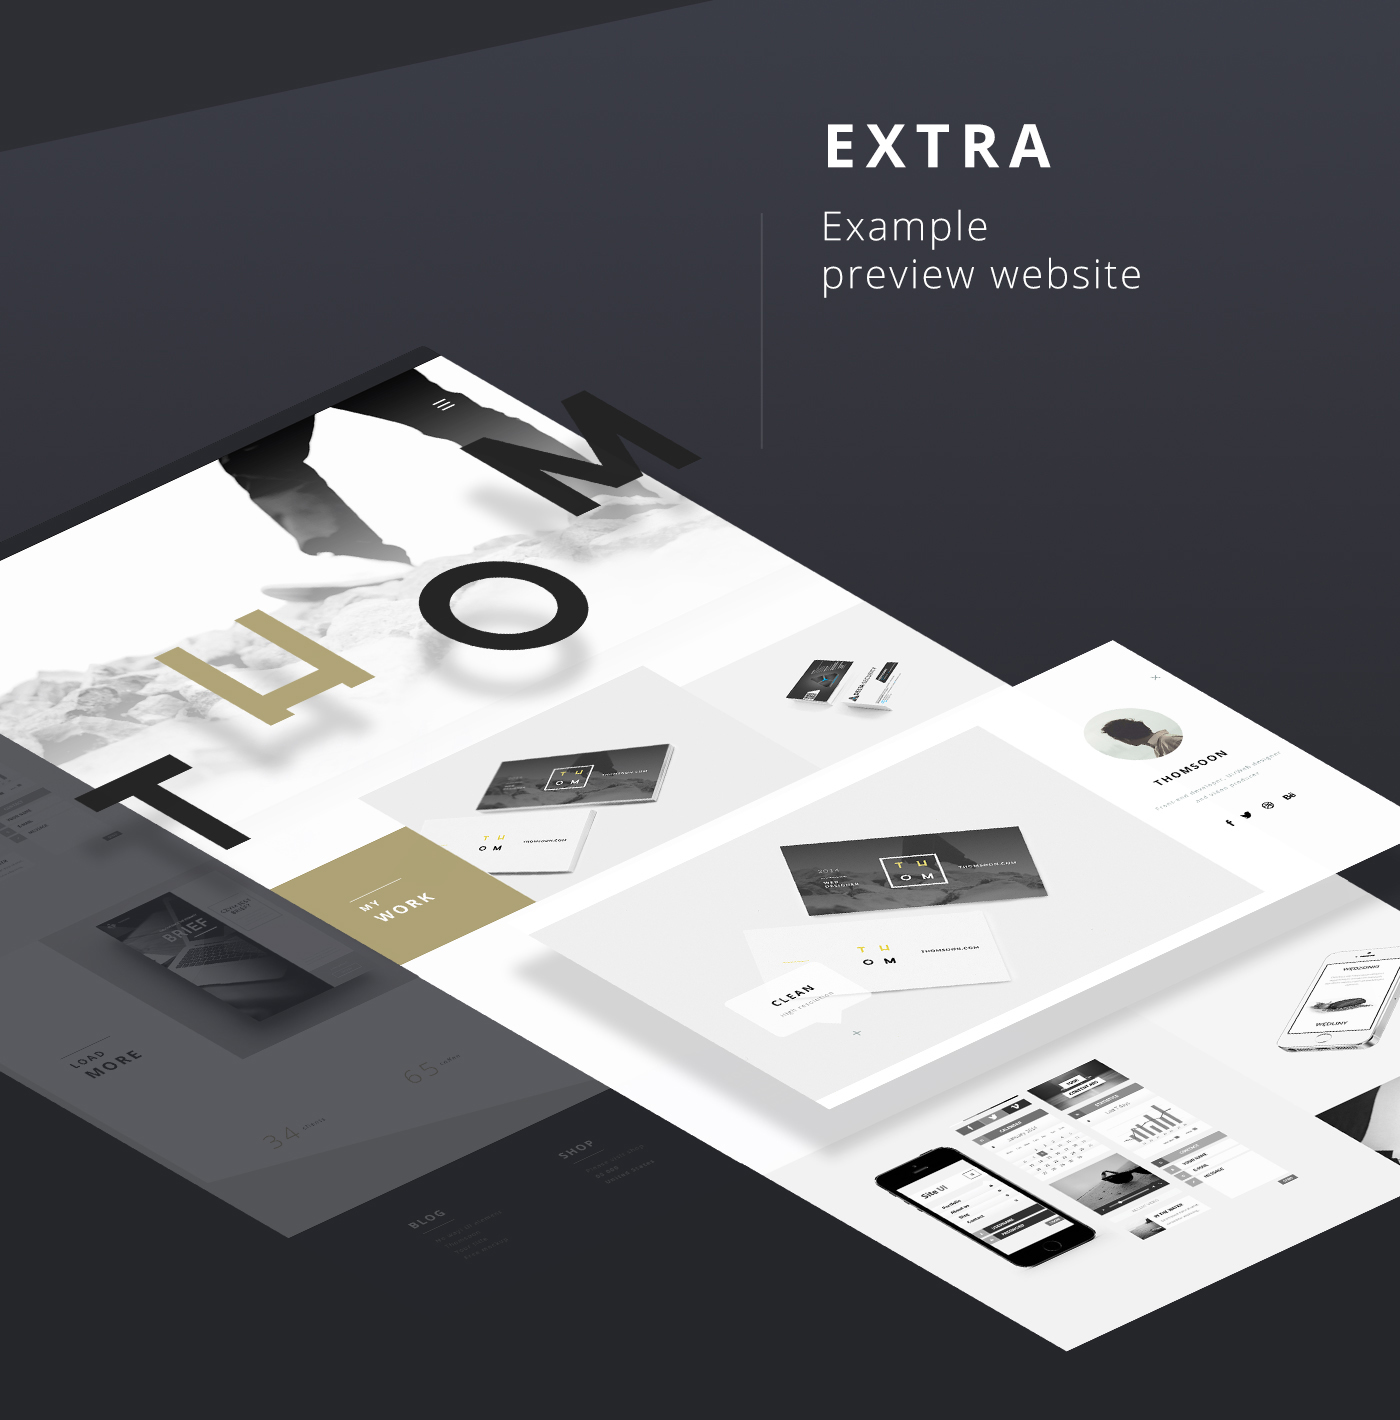 55 Free UI Elements with Extra Website preview